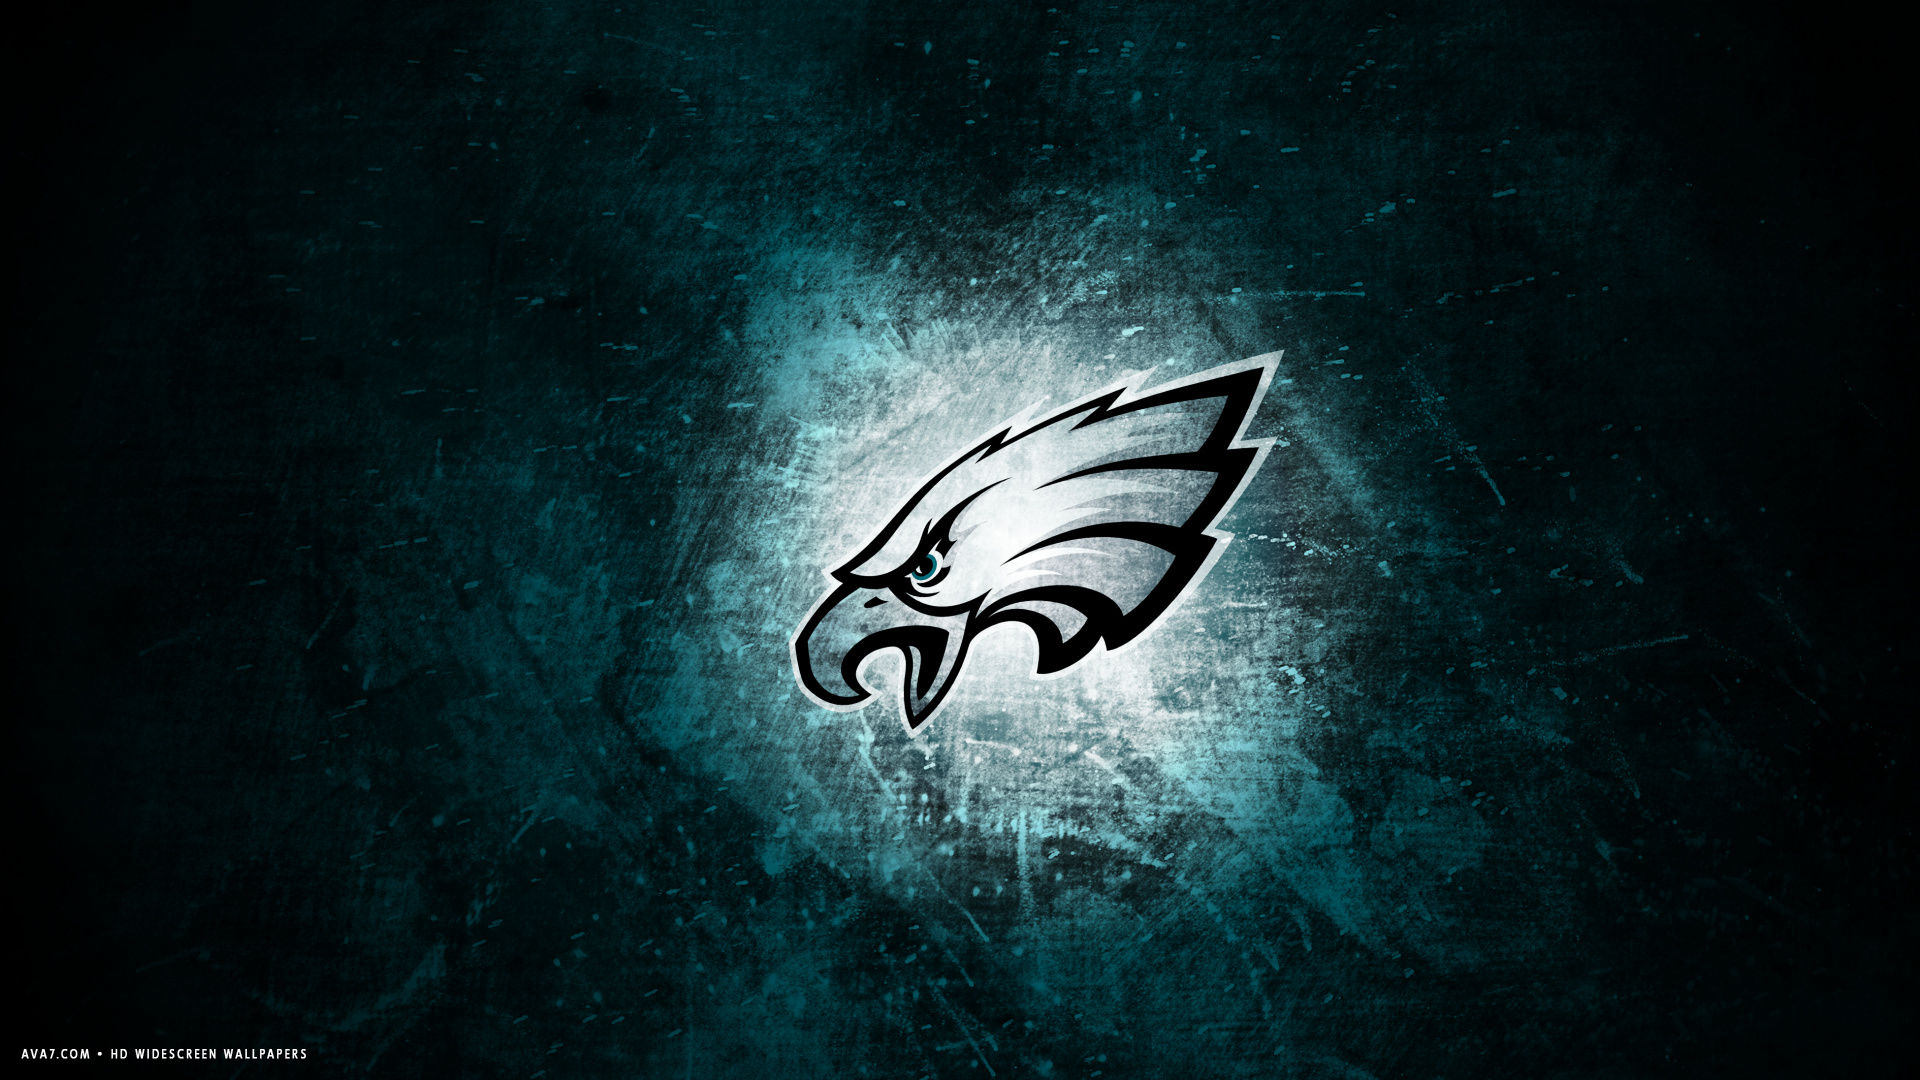 nfl football team hd widescreen wallpaper american football teams 1920x1080